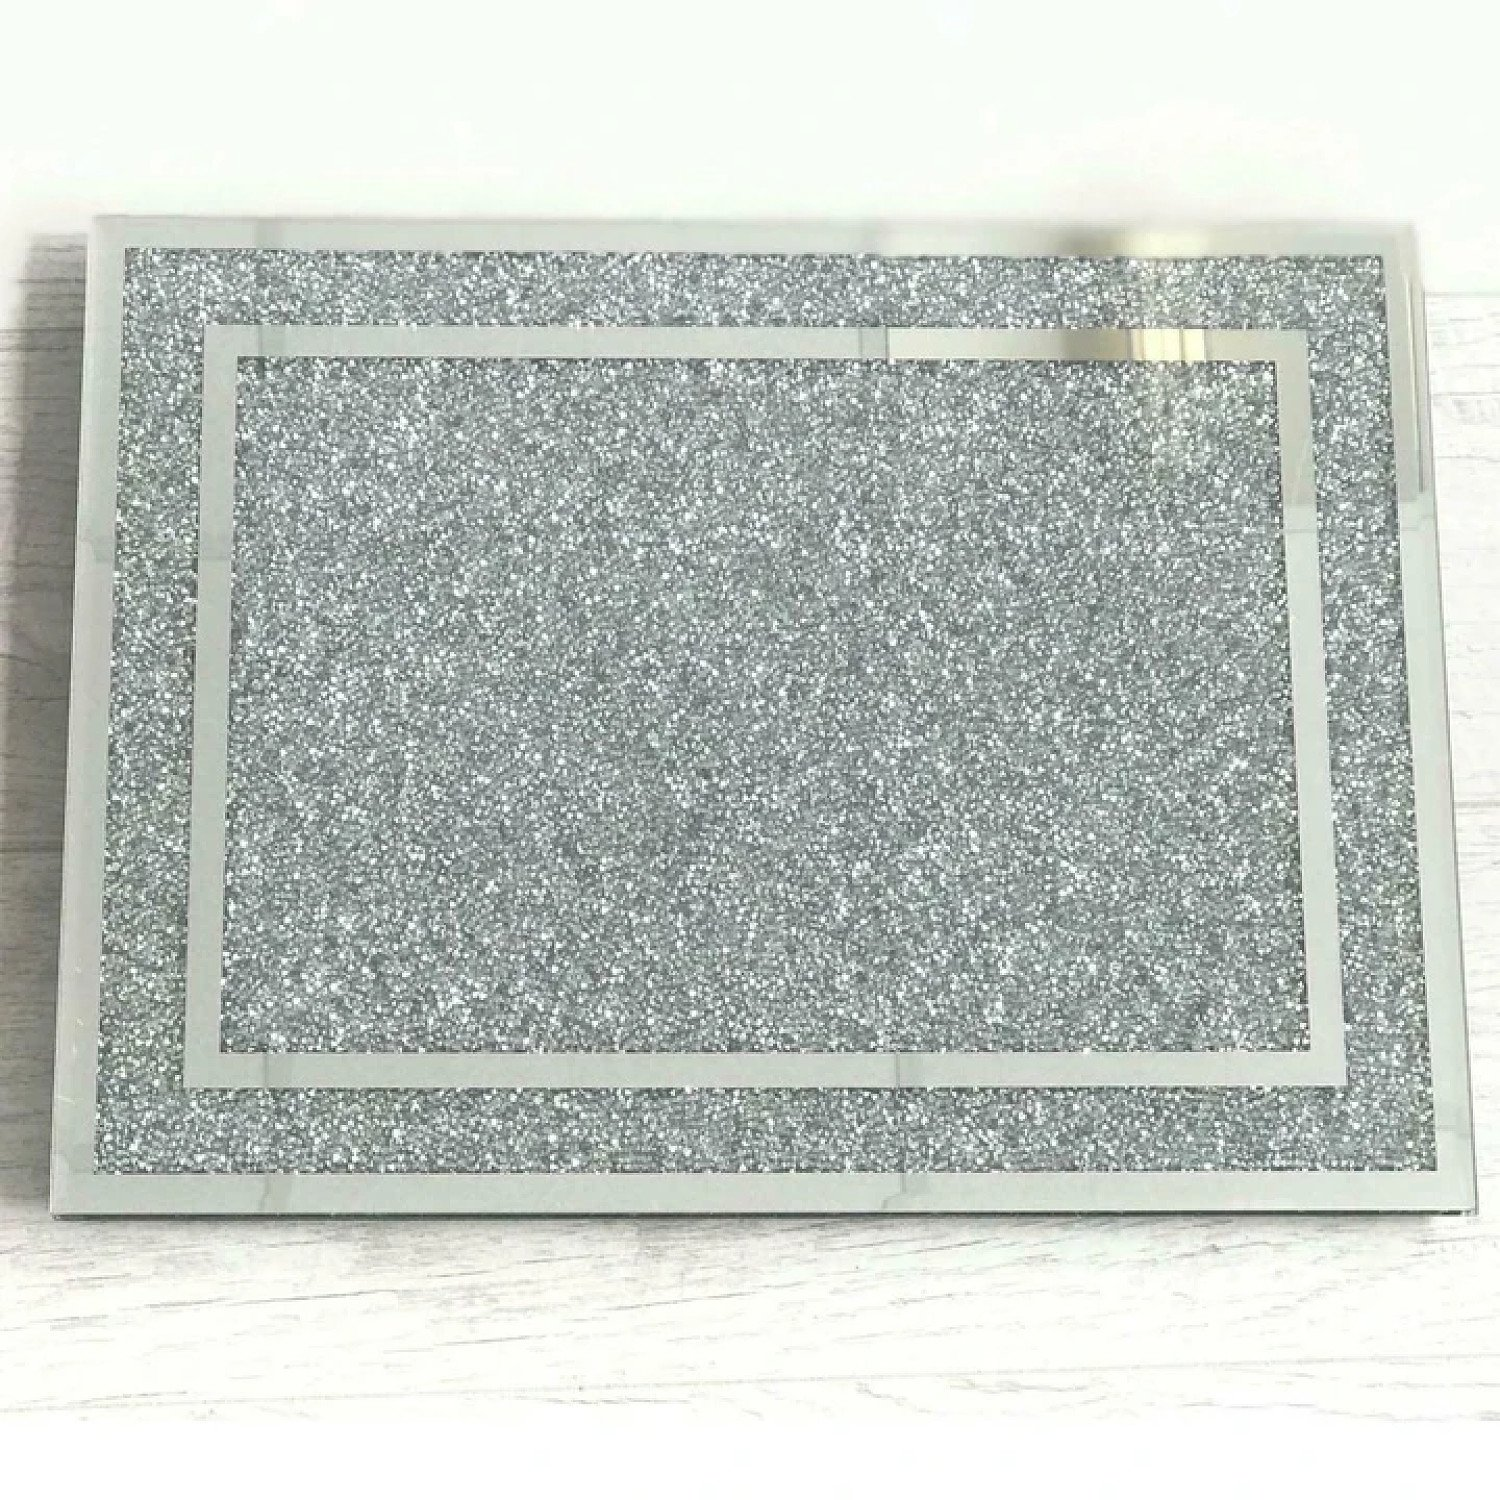 (Silver Chopping Board With Border) Crushed Diamond Crystal Filled Free Postage